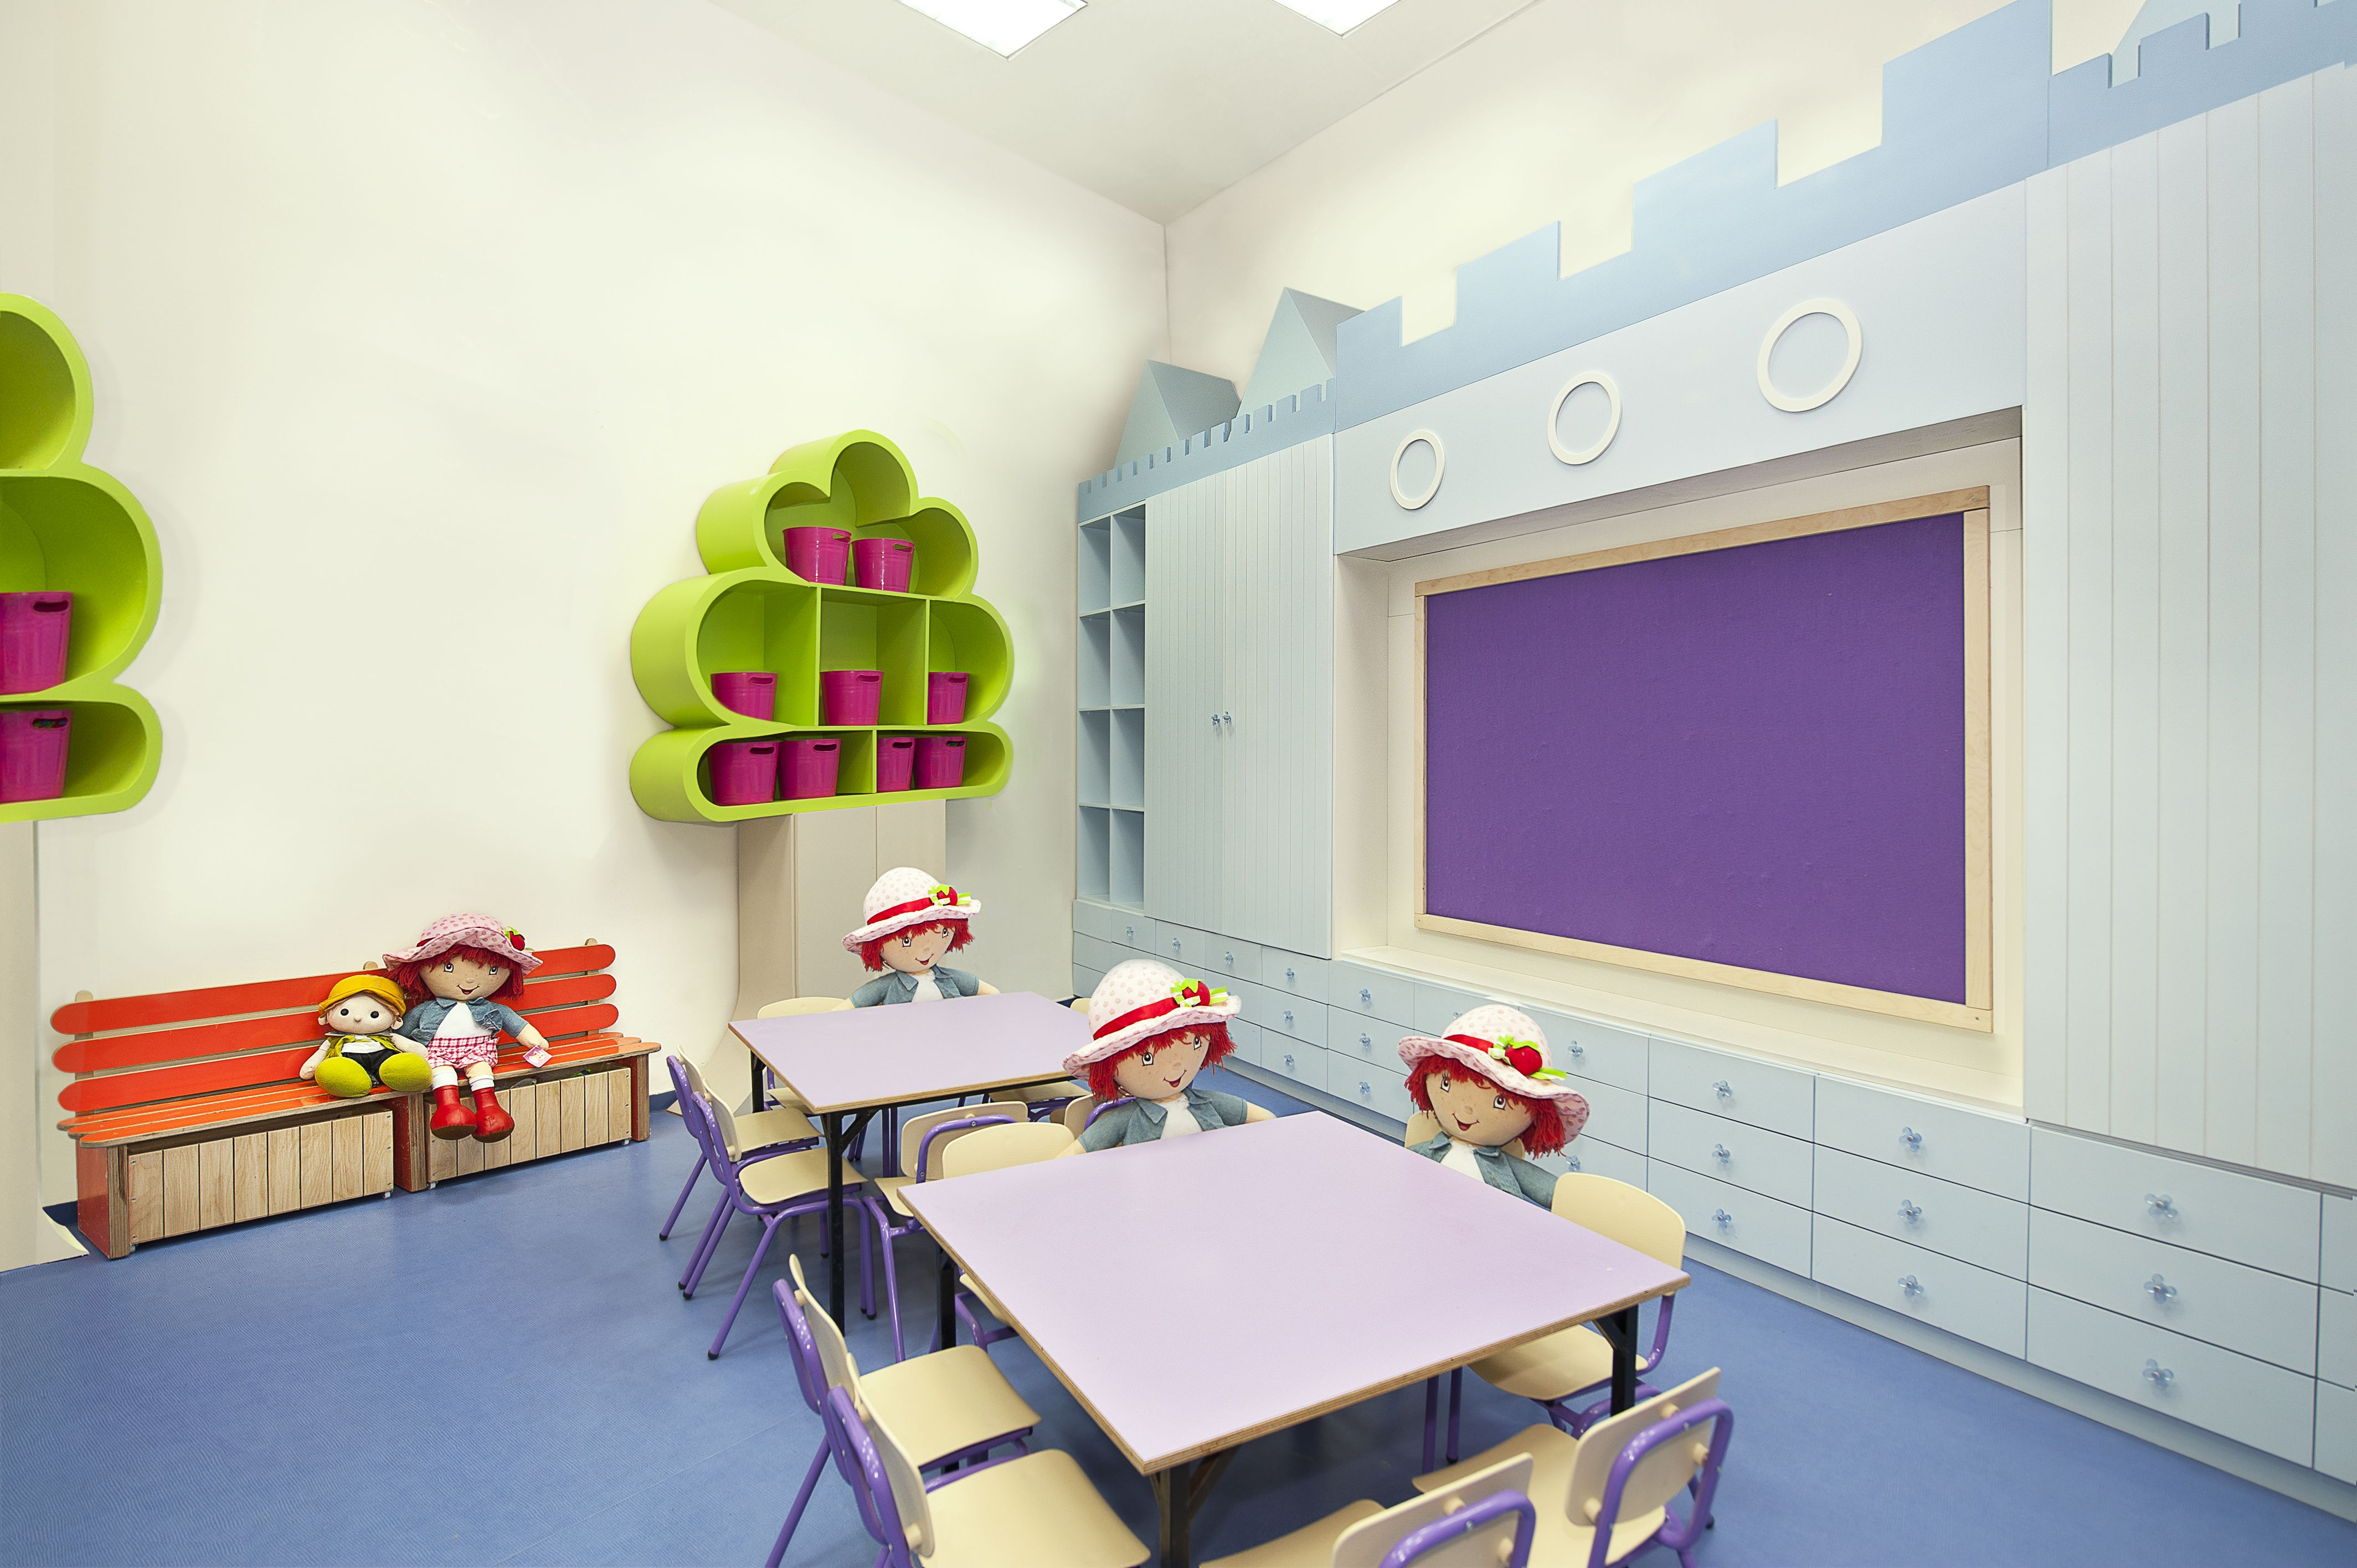 education requirements for interior design - Kindergarten, Interior design and Interiors on Pinterest